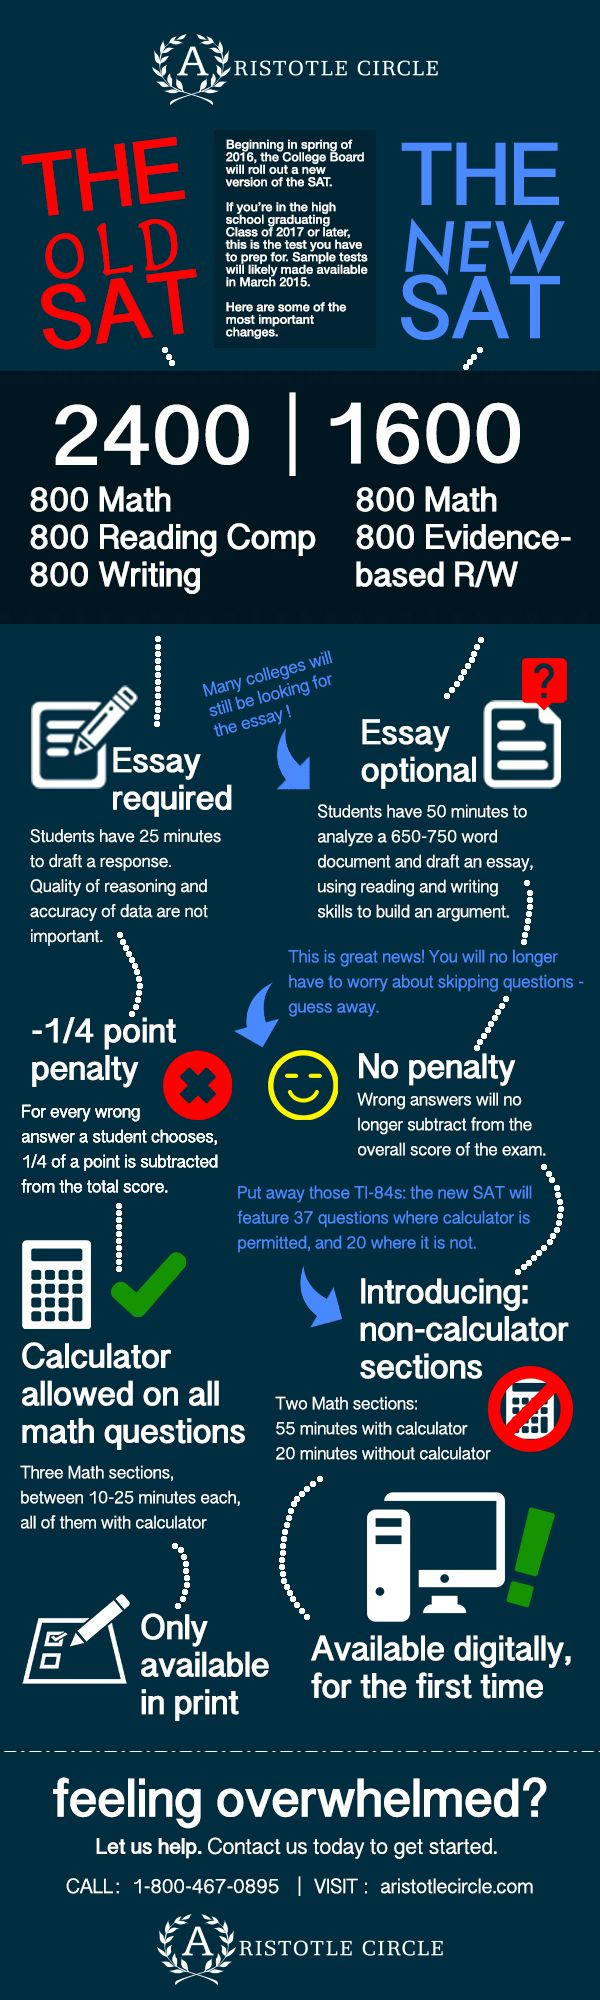 The Old SAT vs. The New SAT: Infographic | What you need to know to Ace the SAT! #EducationForWinners